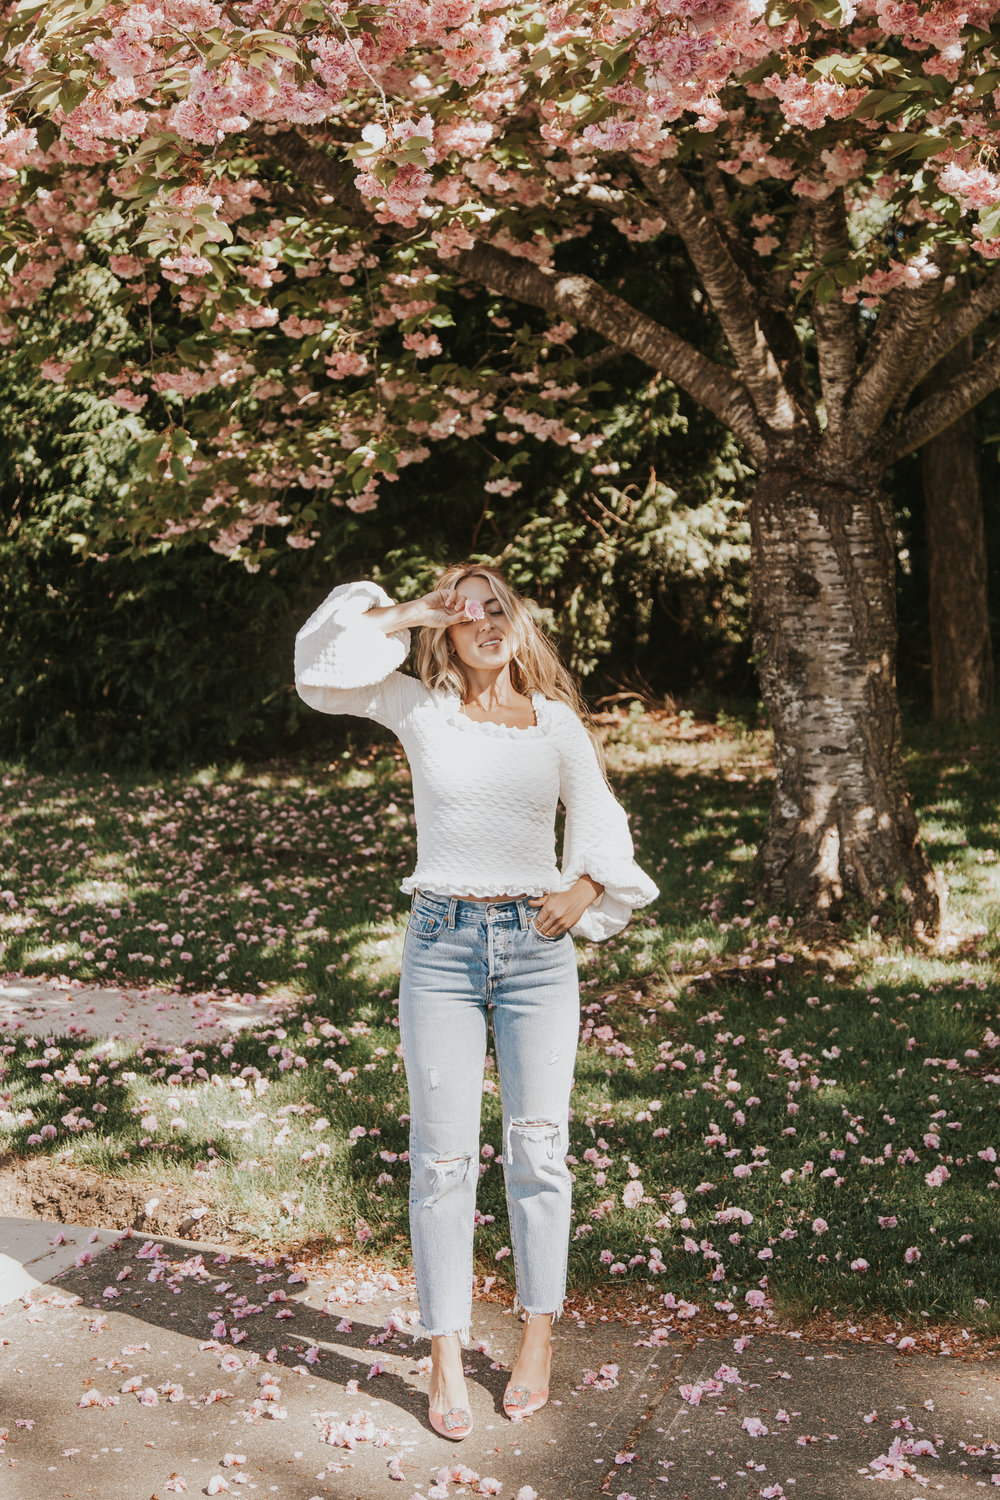 Nala Official Top, Levi's Jeans, Manolo Blahnik Heels,  Alexa Leigh  Necklace Photos by Paige Owen